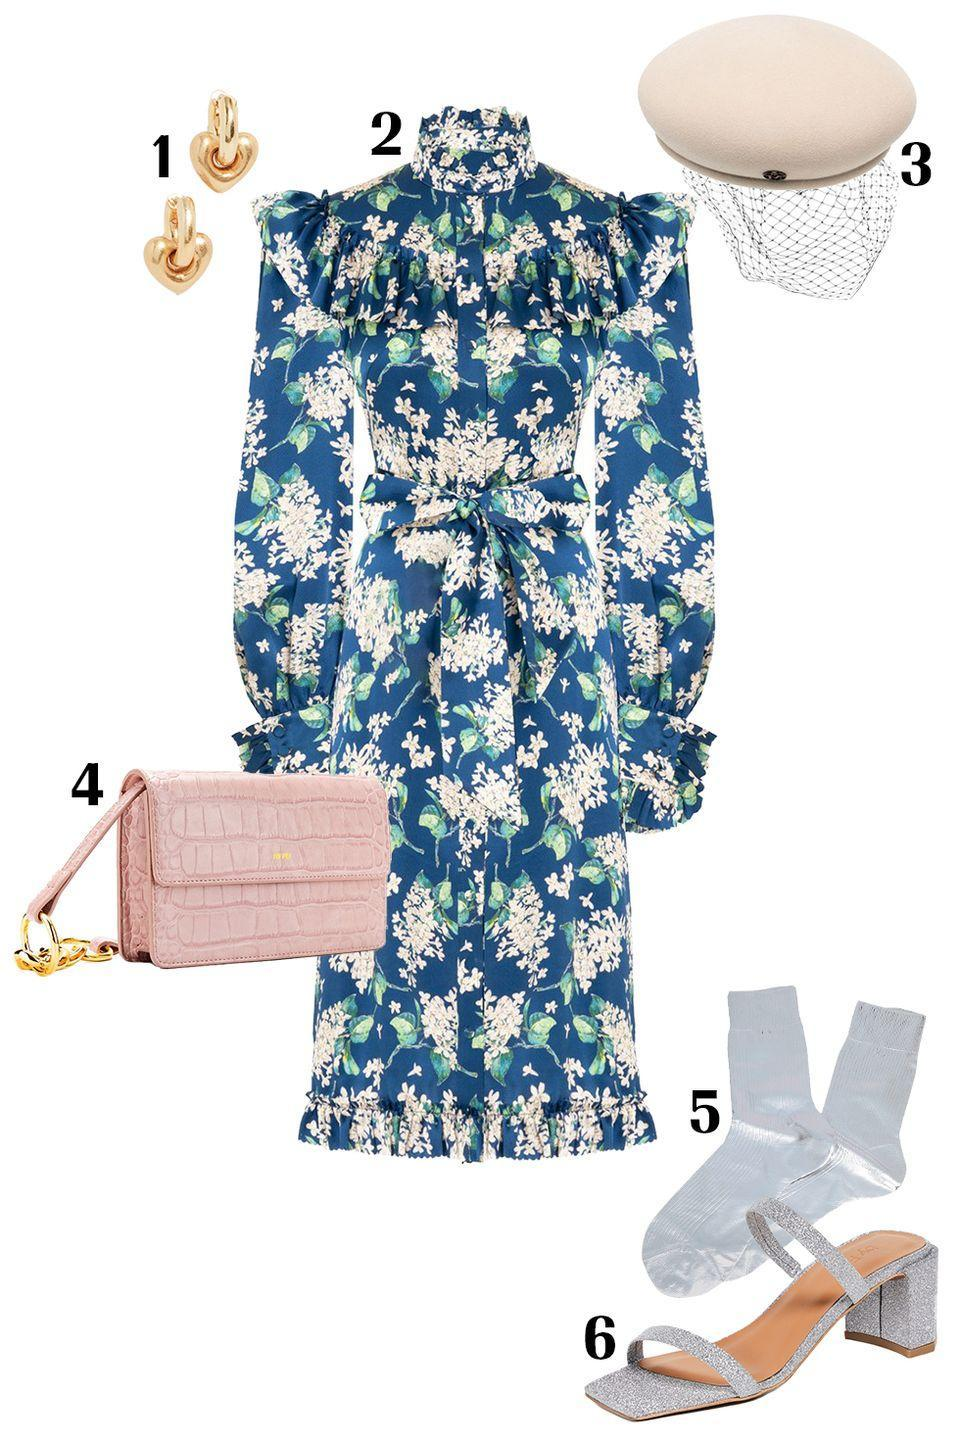 """<p>When we are <em>finally</em> able to dress up for special occasions, I, for one, will be opting for an outfit that speaks to the fact that we have all been wearing loungewear for a full year. Pack on ruffles, florals, glitter, and metallics. Don't stop there—if you're really looking to make a statement, add on a beret with a lace-veil overlay for that added whimsical aesthetic. </p><p>Shop the pieces:<em> <strong>1.</strong> </em><em><a href=""""https://www.shopbop.com/puffy-heart-hoop-madewell/vp/v=1/1588183958.htm?"""" rel=""""nofollow noopener"""" target=""""_blank"""" data-ylk=""""slk:Madewell Heart Hoops"""" class=""""link rapid-noclick-resp"""">Madewell Heart Hoops</a></em><em>,</em> $24; <strong>2.</strong> <em><a href=""""https://www.modaoperandi.com/women/p/the-vampire-s-wife/the-revelation-bow-detailed-silk-dress/482384"""" rel=""""nofollow noopener"""" target=""""_blank"""" data-ylk=""""slk:Vampire's Wife Dress"""" class=""""link rapid-noclick-resp"""">Vampire's Wife Dress</a></em>, $1,695; <strong>3.</strong> <em><a href=""""https://www.farfetch.com/shopping/women/maison-michel-new-bonnie-lace-veil-beret-item-16009420.aspx?storeid=9592"""" rel=""""nofollow noopener"""" target=""""_blank"""" data-ylk=""""slk:Maison Michele Beret"""" class=""""link rapid-noclick-resp"""">Maison Michele Beret</a></em>, $675; <strong>4.</strong> <em><a href=""""https://www.jwpei.com/products/julia-acrylic-chain-crossbody-bag-pink-croc?_pos=5&_sid=d4ee6f2d7&_ss=r"""" rel=""""nofollow noopener"""" target=""""_blank"""" data-ylk=""""slk:JW PEI Crossbody Bag"""" class=""""link rapid-noclick-resp"""">JW PEI Crossbody Bag</a></em> $45; <strong>5.</strong> <em><a href=""""https://www.yoox.com/US/48234541LW/item?#cod10=48234541LW&sizeId=1&sizeName=ONESIZE"""" rel=""""nofollow noopener"""" target=""""_blank"""" data-ylk=""""slk:Maria La Rosa Socks"""" class=""""link rapid-noclick-resp"""">Maria La Rosa Socks</a></em>, $49, <strong>6.</strong> <a href=""""https://www.shopbop.com/tanya-sandals-by-far/vp/v=1/1514554367.htm?"""" rel=""""nofollow noopener"""" target=""""_blank"""" data-ylk=""""slk:By Far Sandals"""" class=""""link rapid-noclick-resp""""><em>By F"""